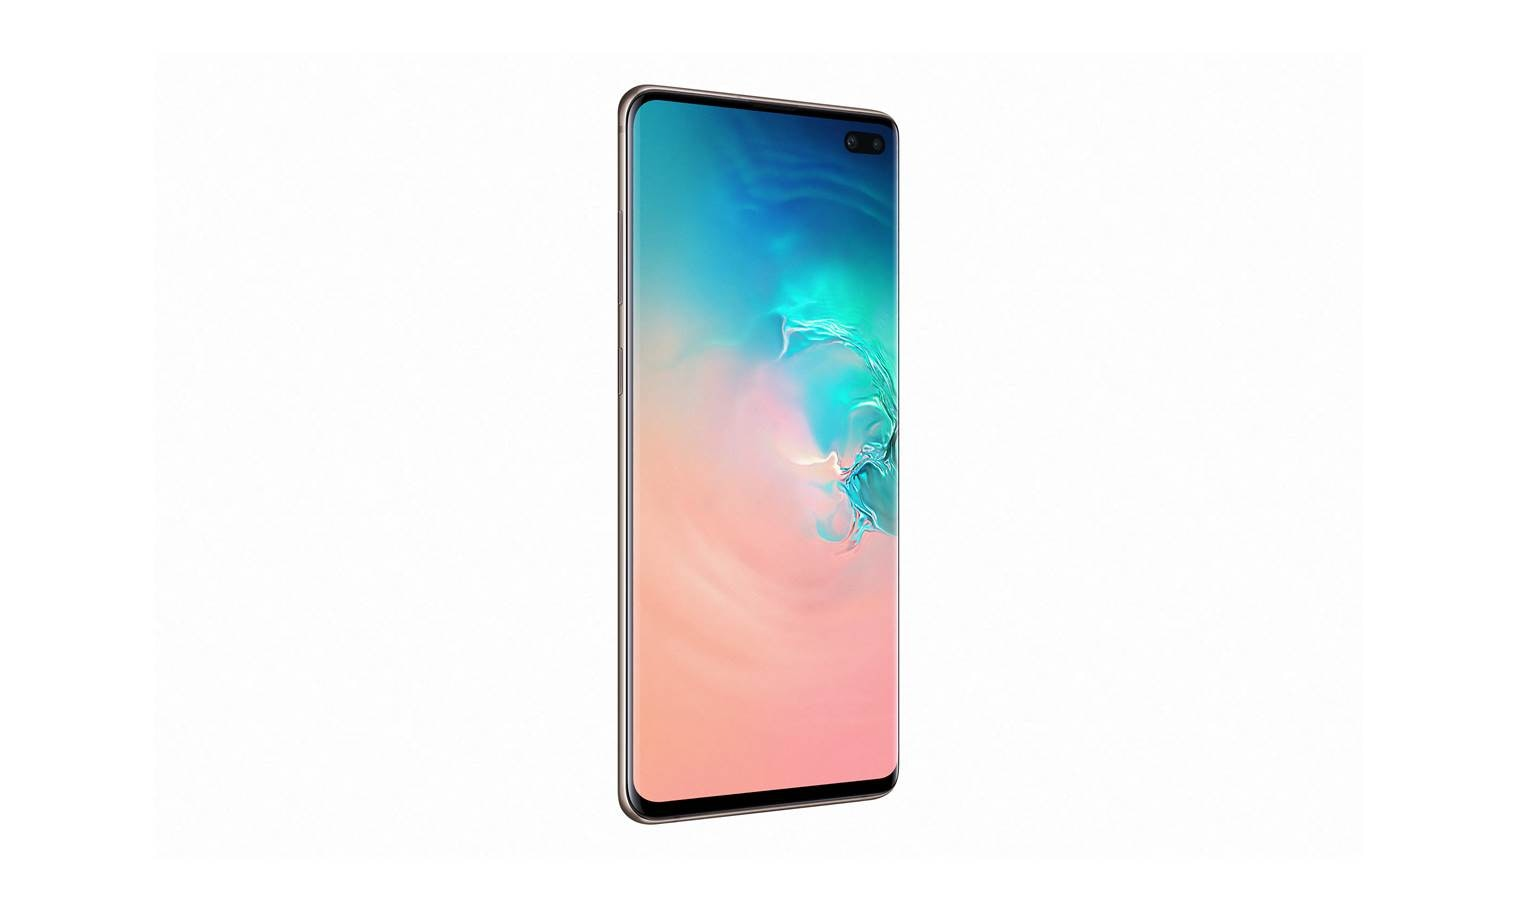 Samsung Galaxy S10+ Smartphone - Ceramic White (Right)